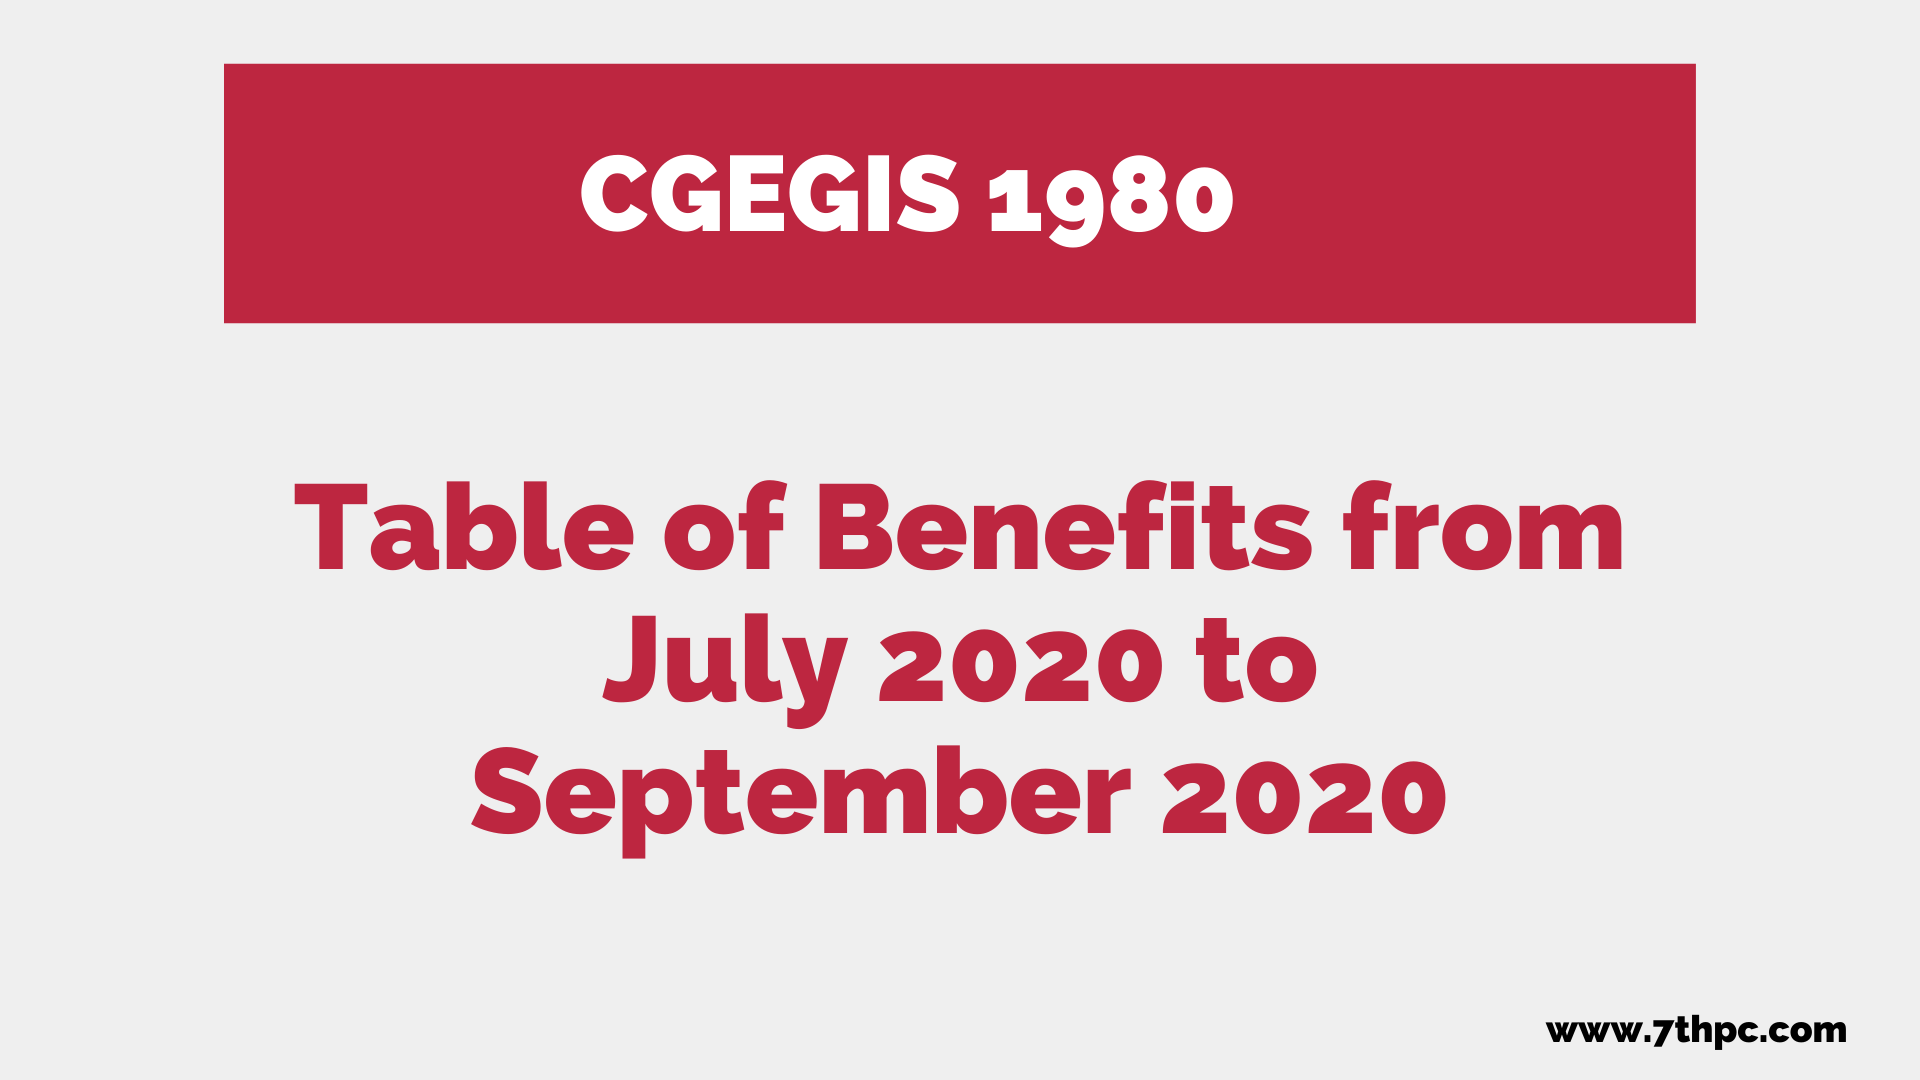 CGEGIS 1980 - Table of Benefits from July 2020 to September 2020